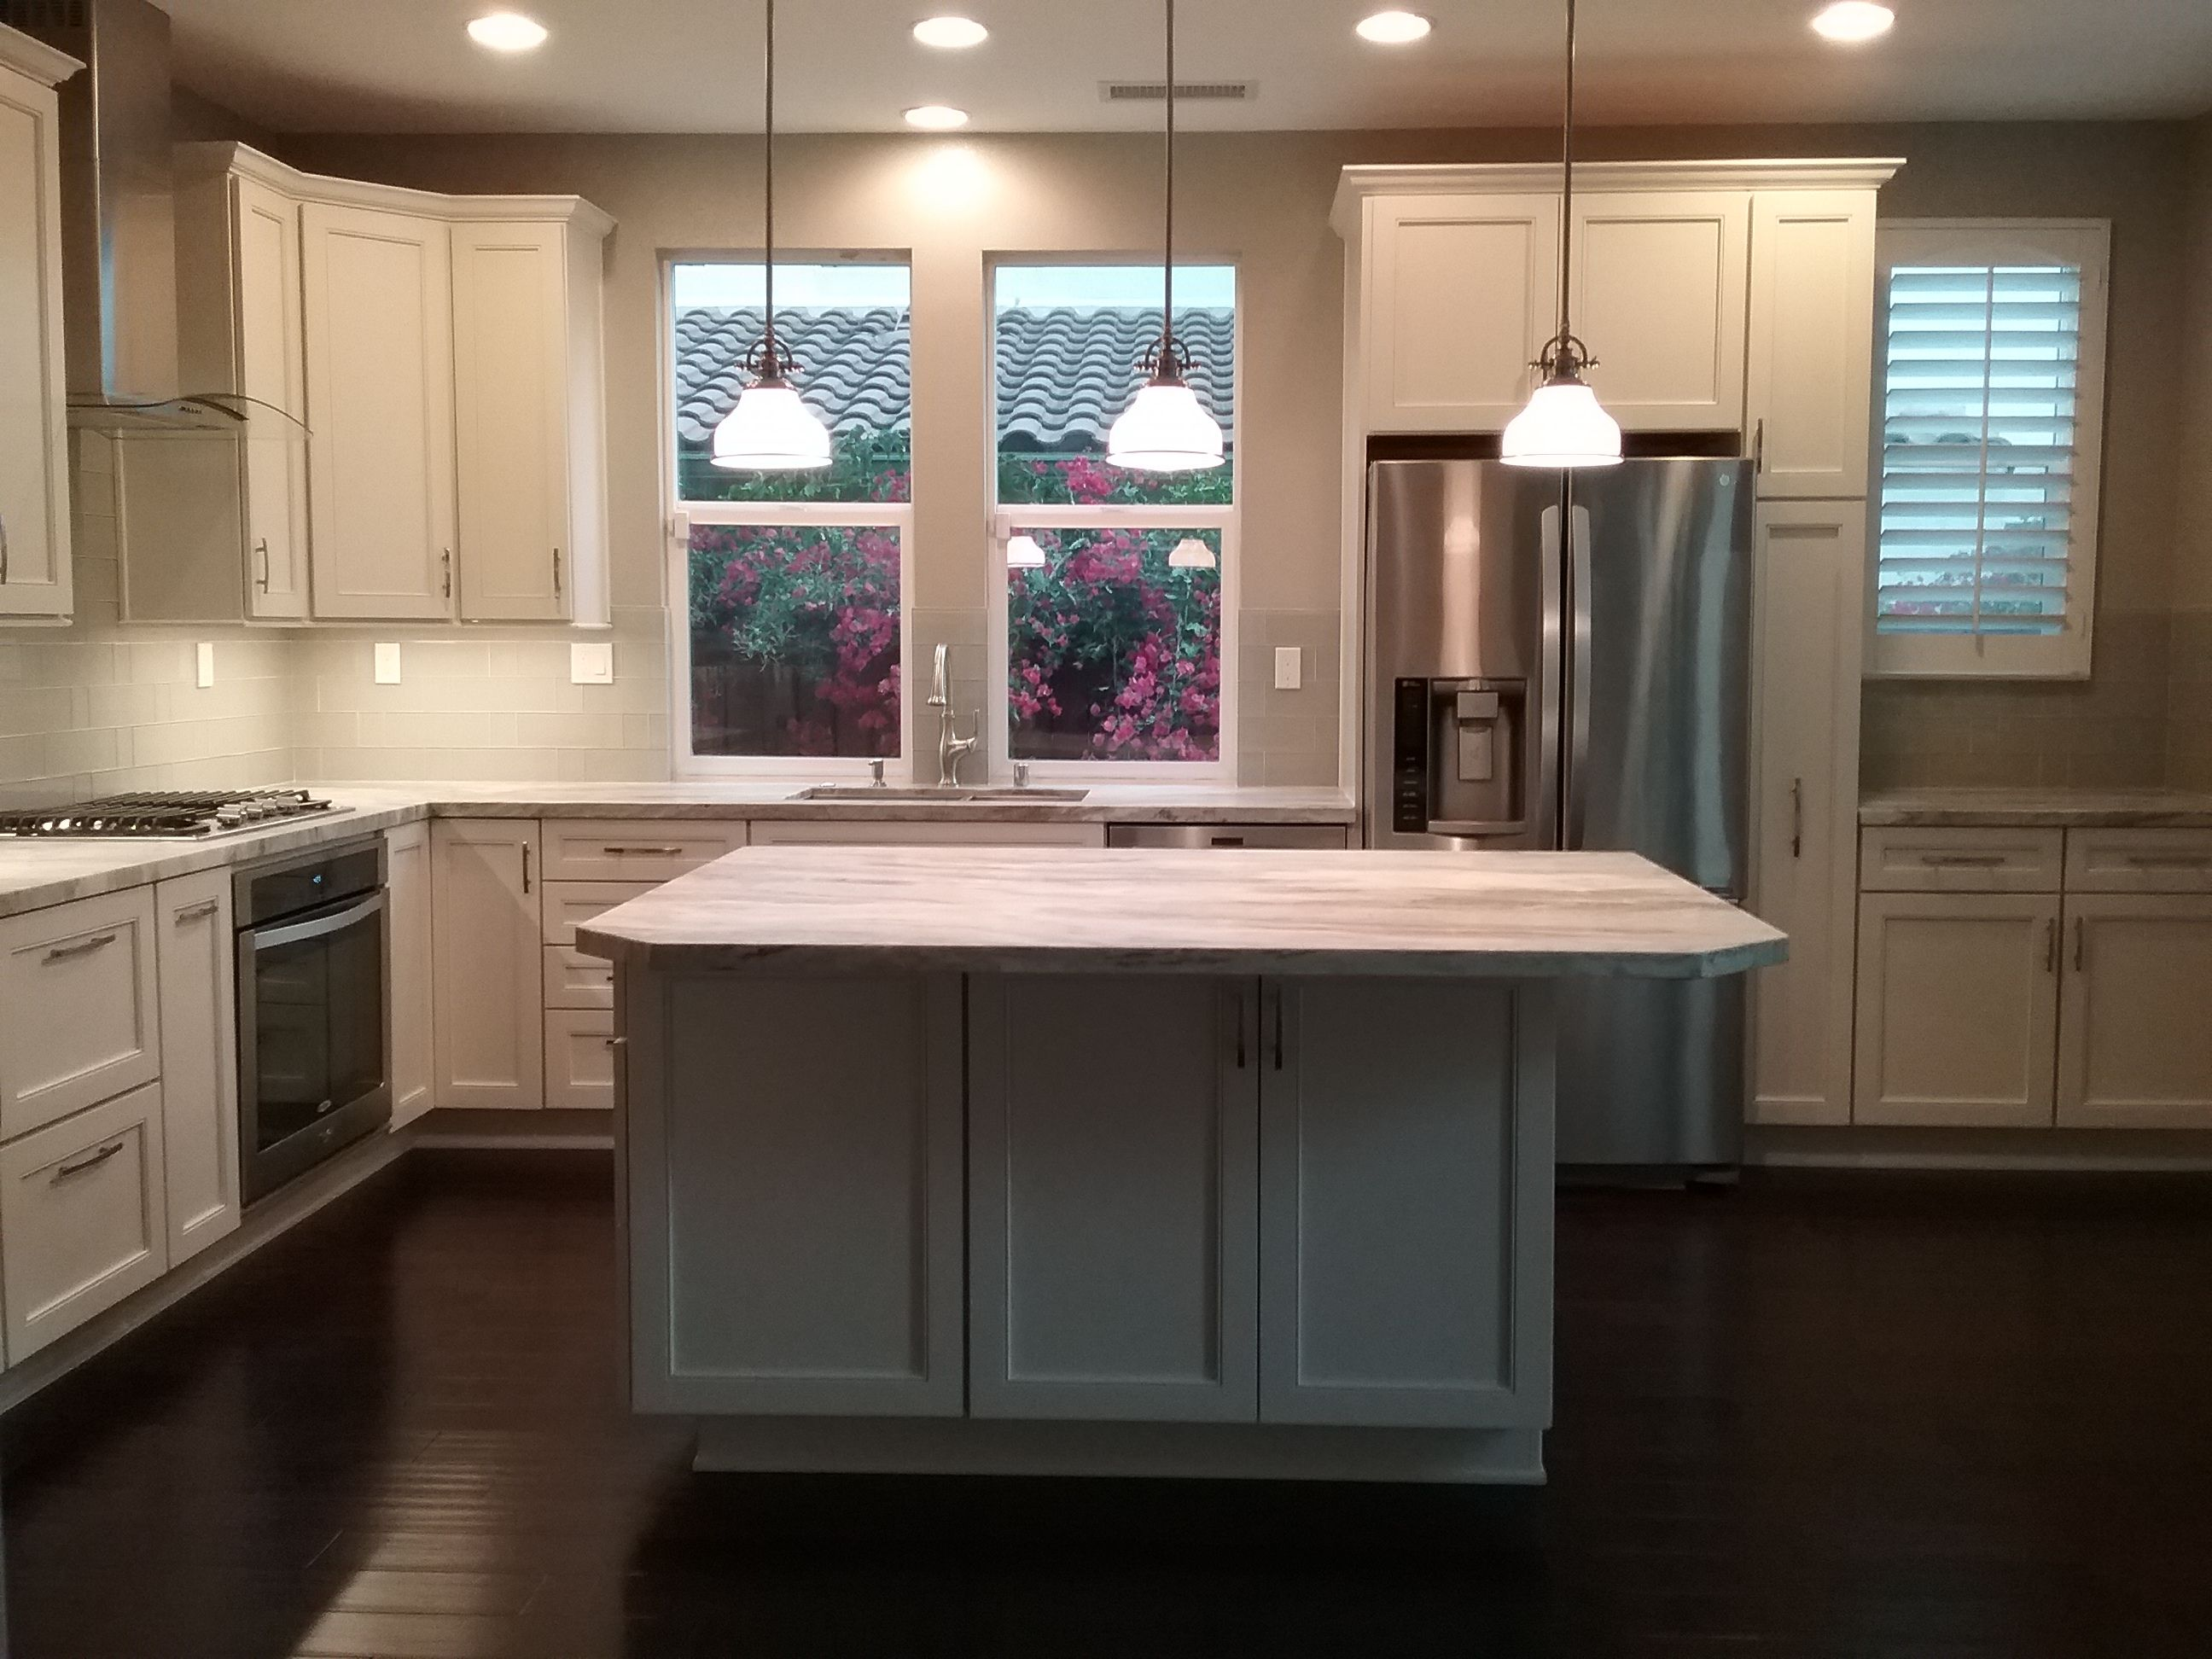 Kitchen Dynasty Cabinets In Dove Grey My Work As A Kitchen And Bath Specialist Pinterest Kitchen Kitchen And Bath And Kitchen Cabinets